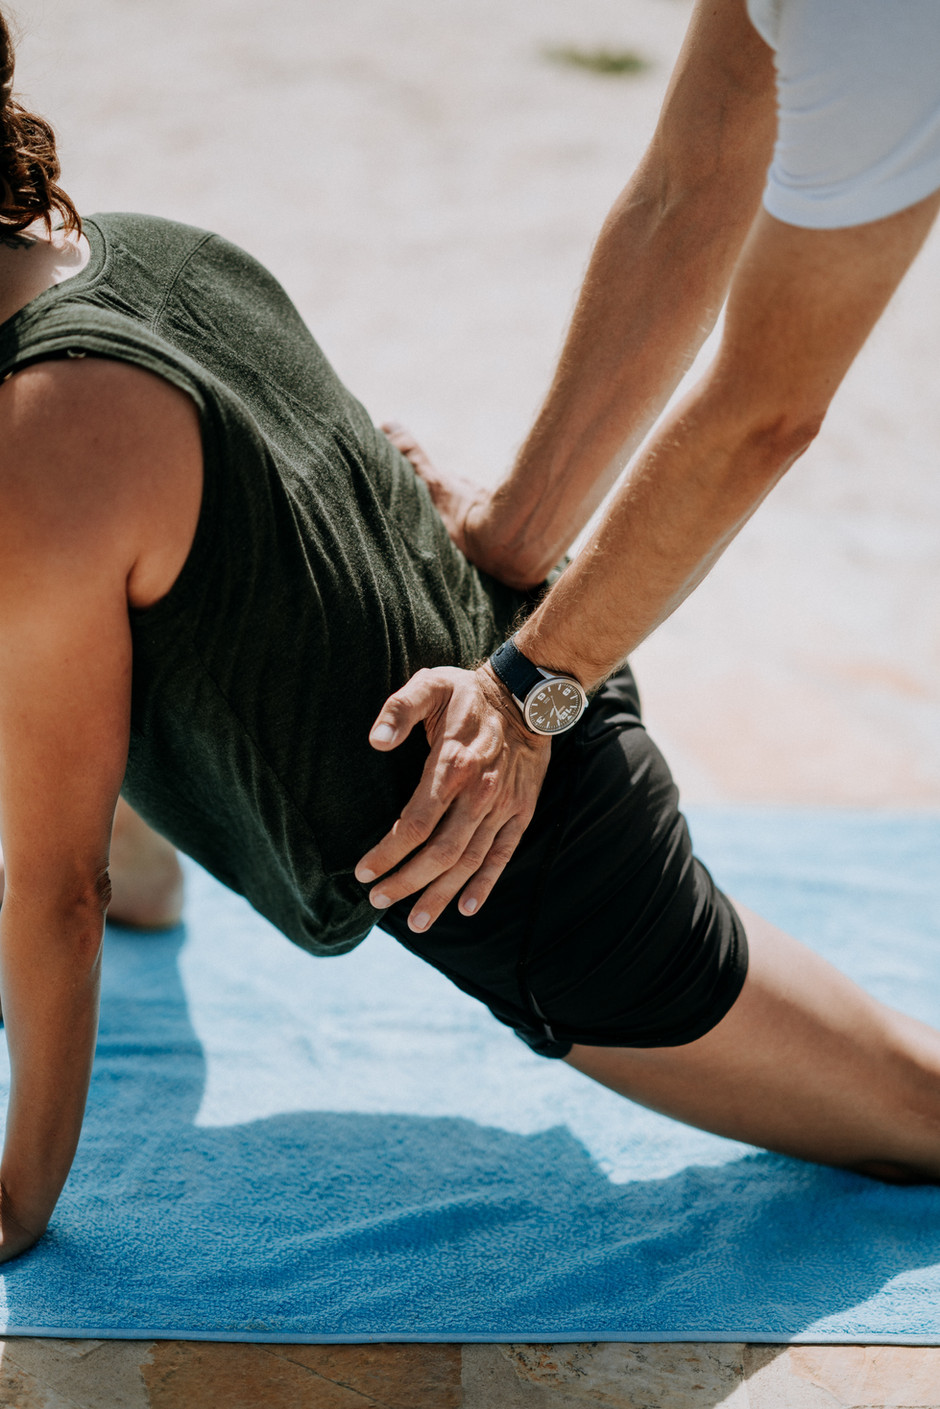 How 'Soft' is Your Soft Tissue Injury?